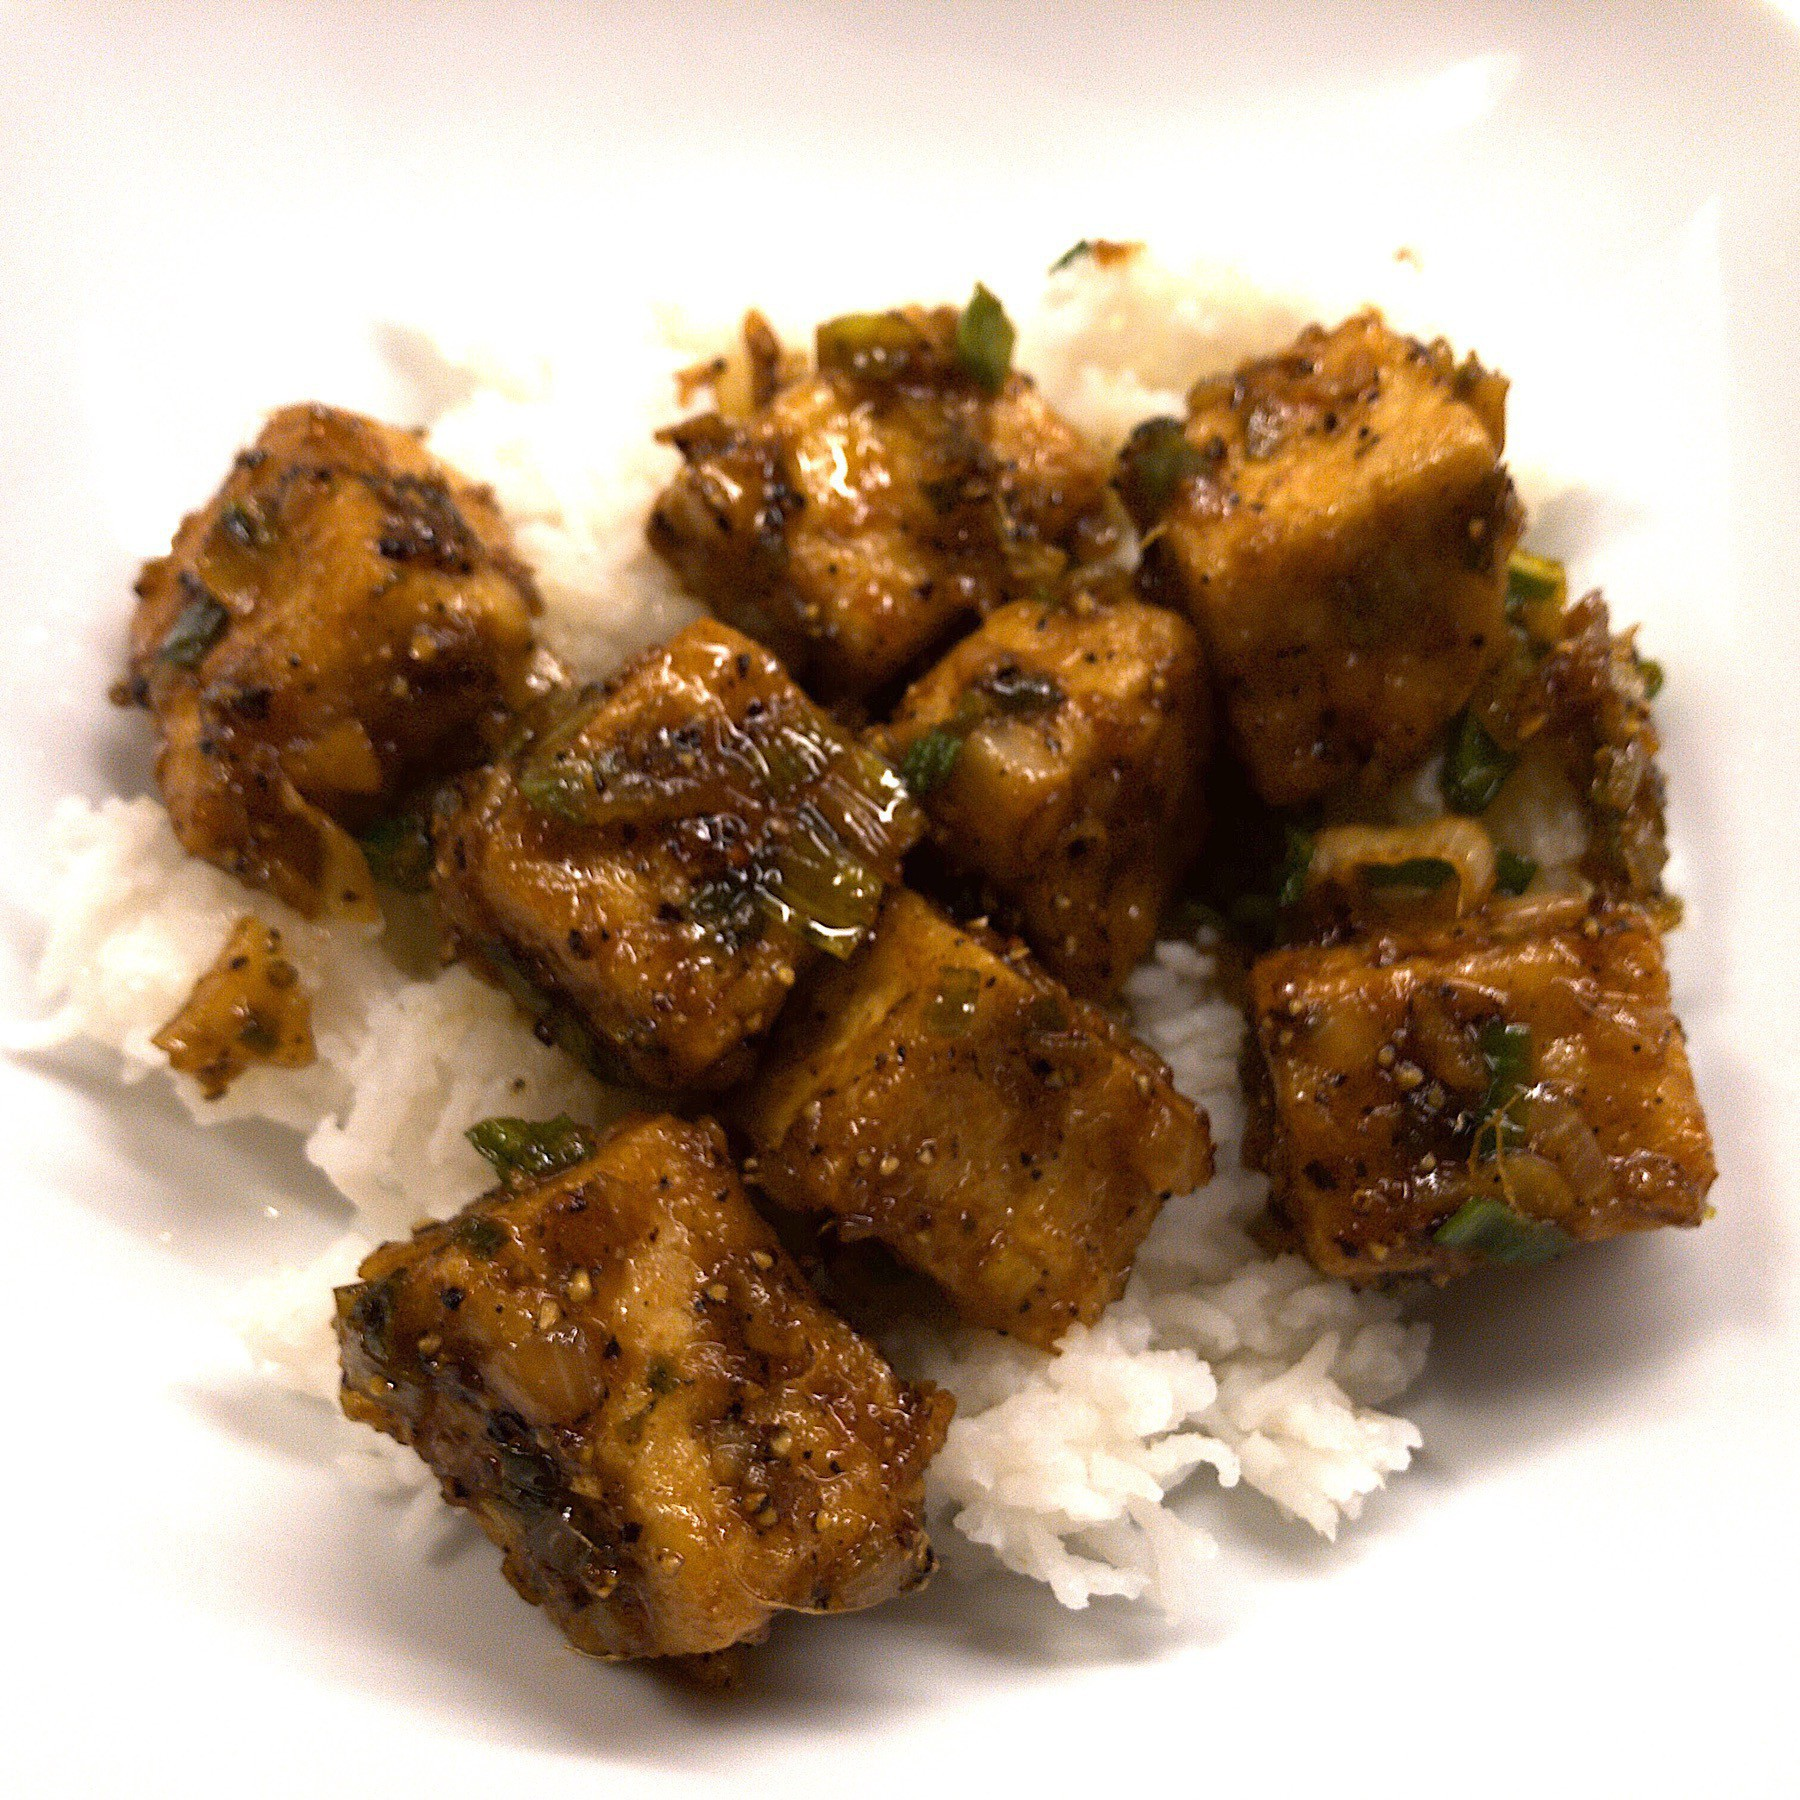 Tofu on basmati rice.